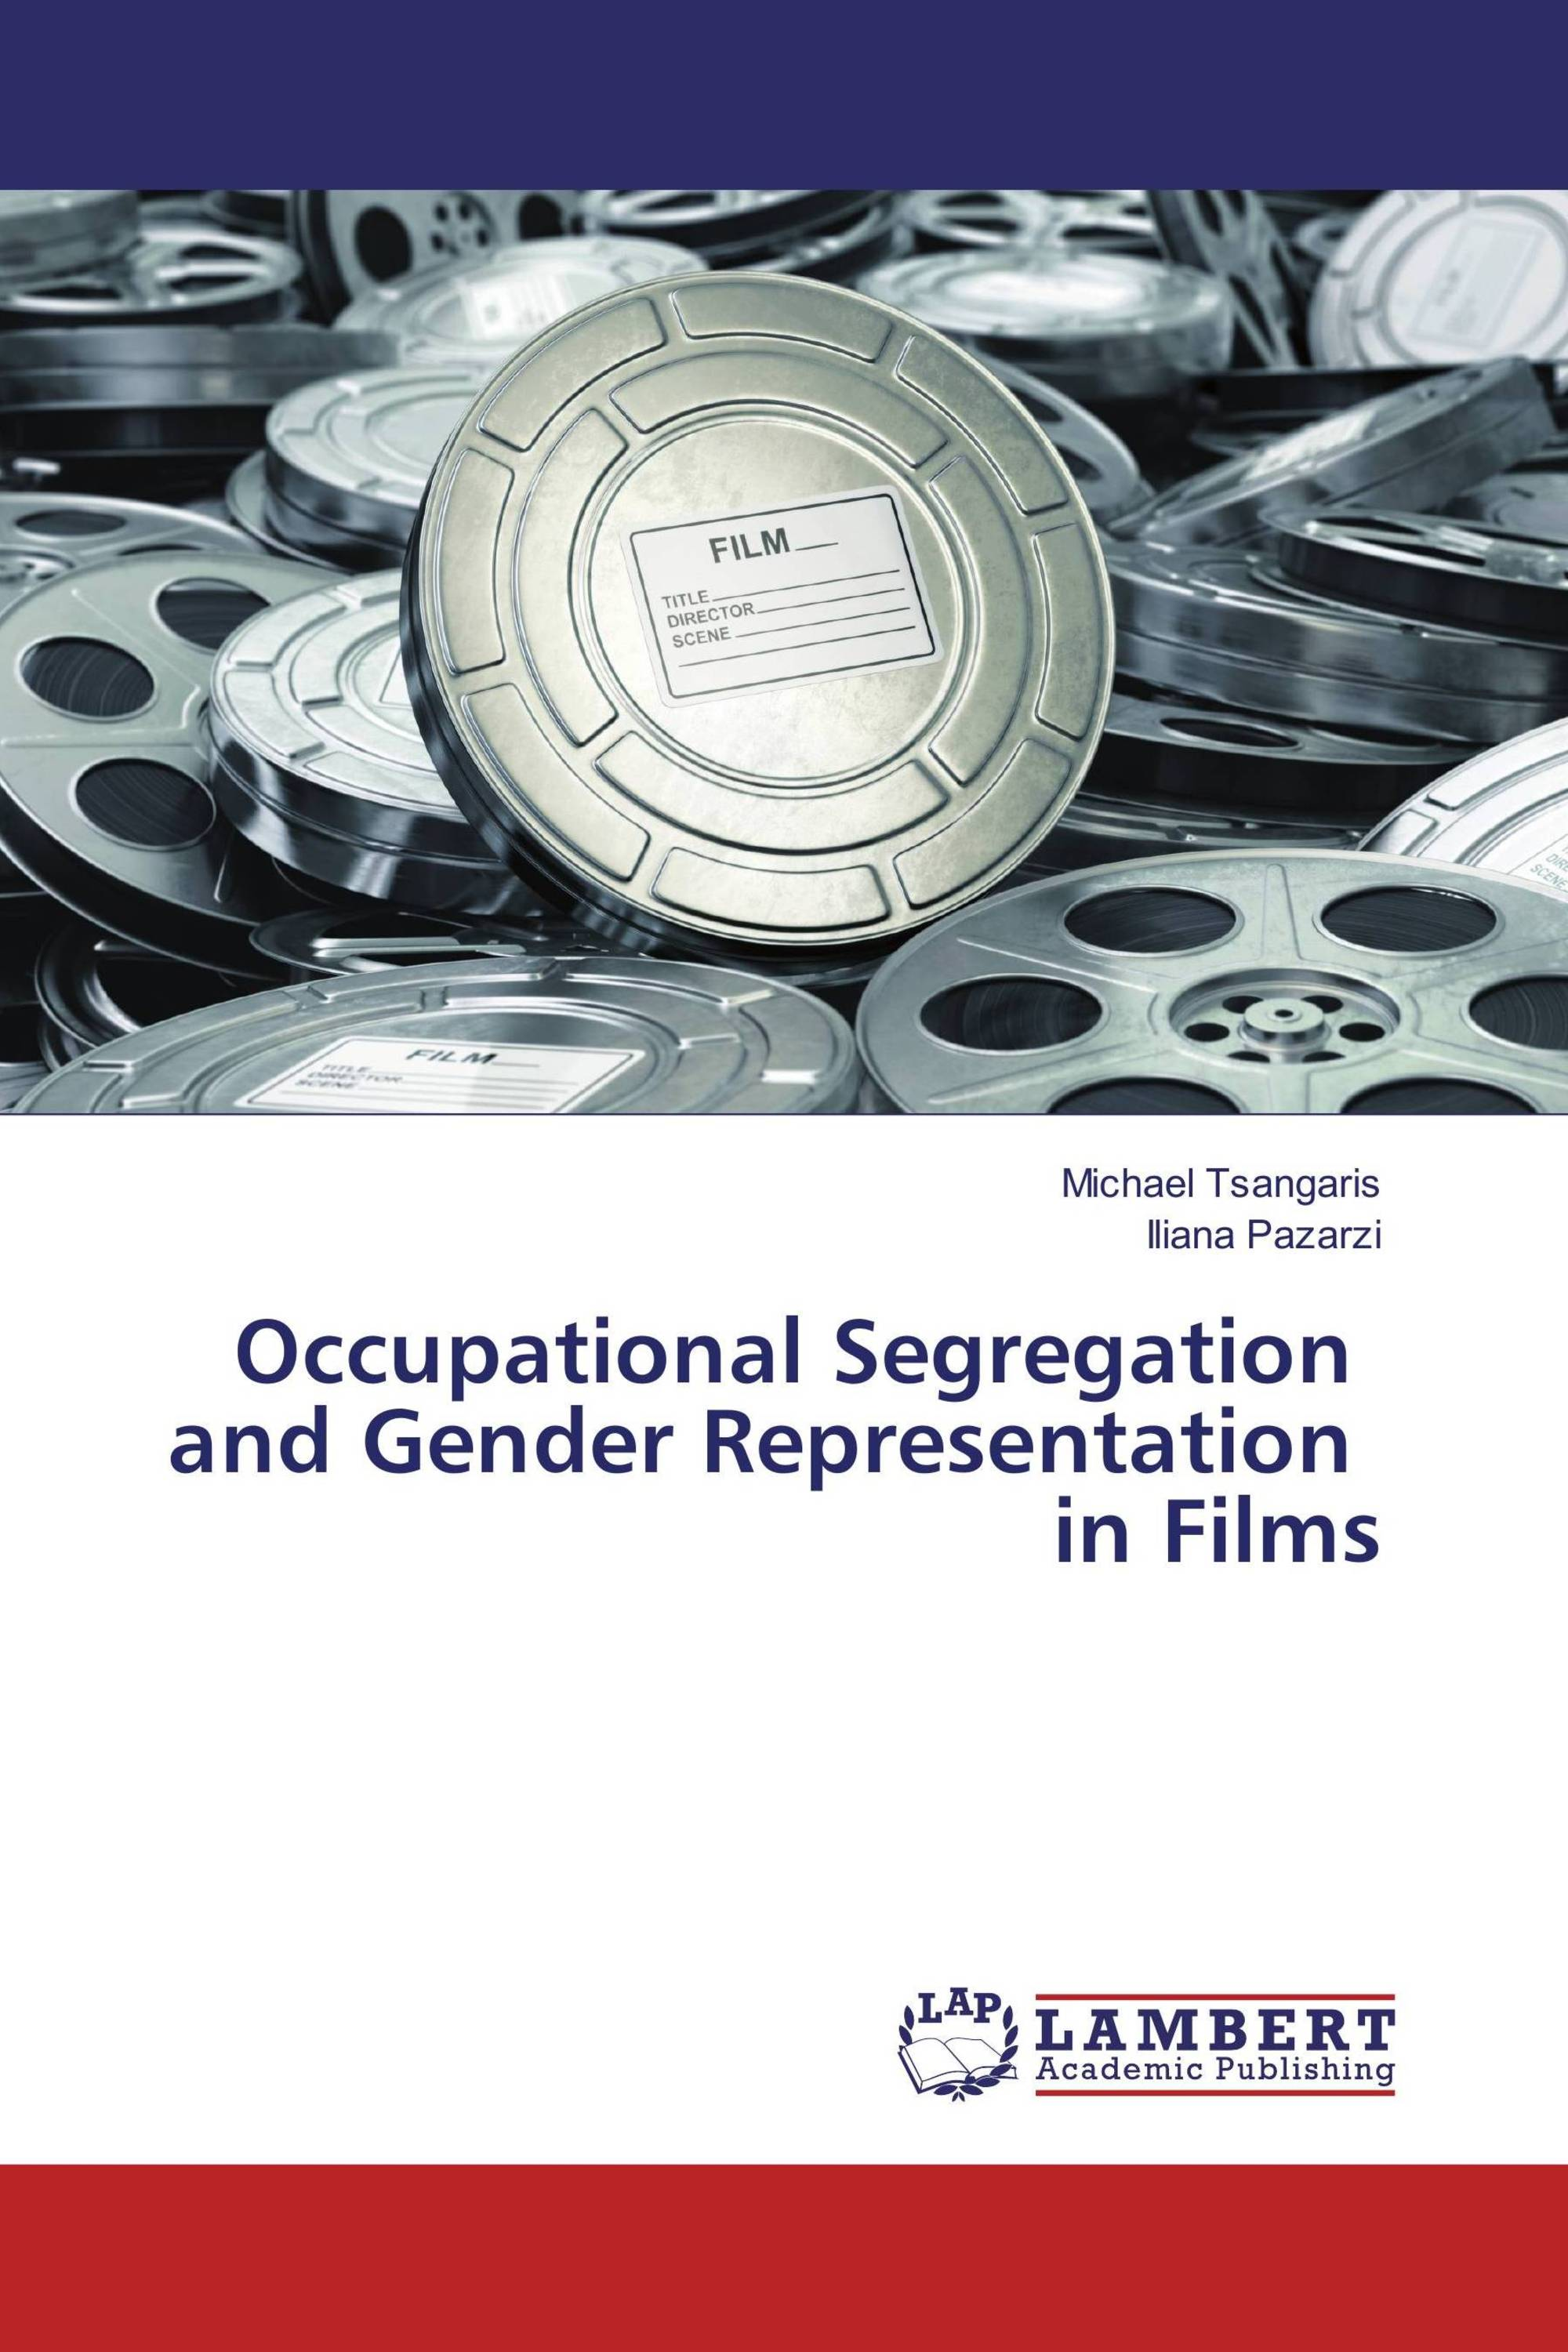 occupational segregation Abstractbased on detailed occupation titles and making use of measures that do not require pair-wise comparisons, this paper shows that the occupational segregation of african american women declined dramatically in 1940–80, decreased slightly in 1980–2000, and remained stagnant in 2000–10.